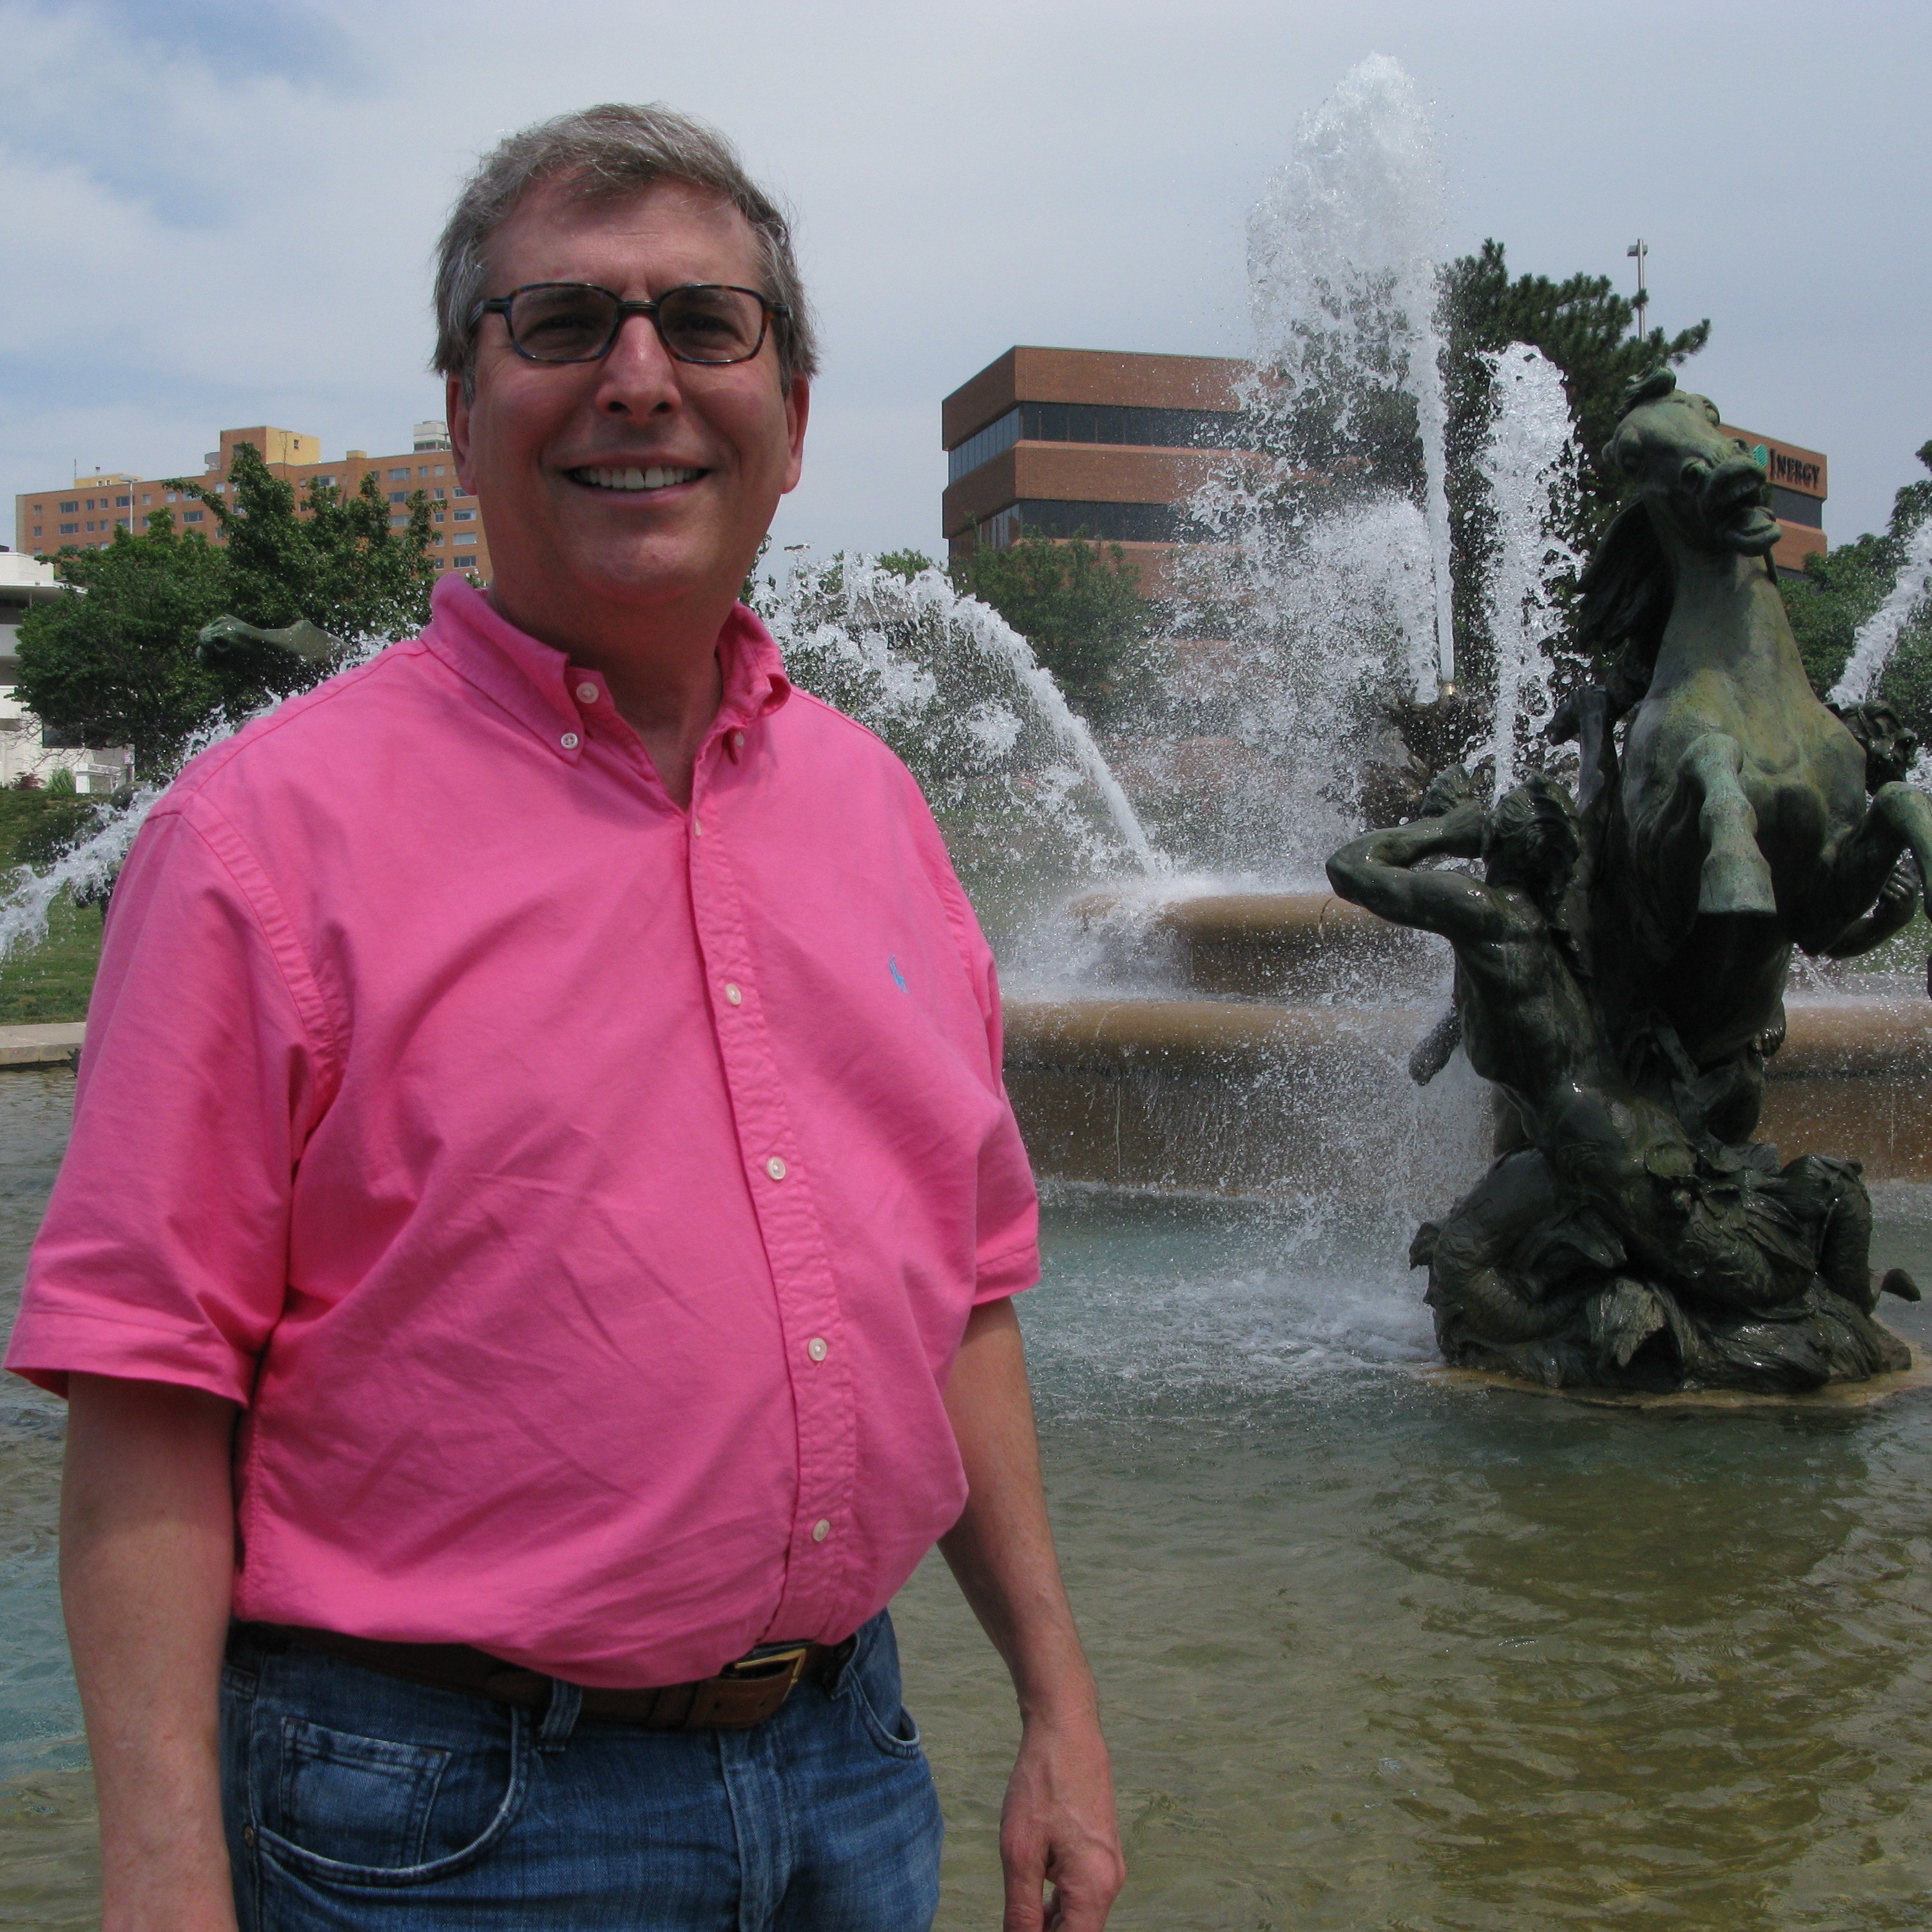 The J.C. Nichols Memorial Fountain -- a familiar landmark in Kansas City, Mo. -- is a popular meeting place for Goldman's characters. The author's family has lived in Kansas City, Mo., for four generations.